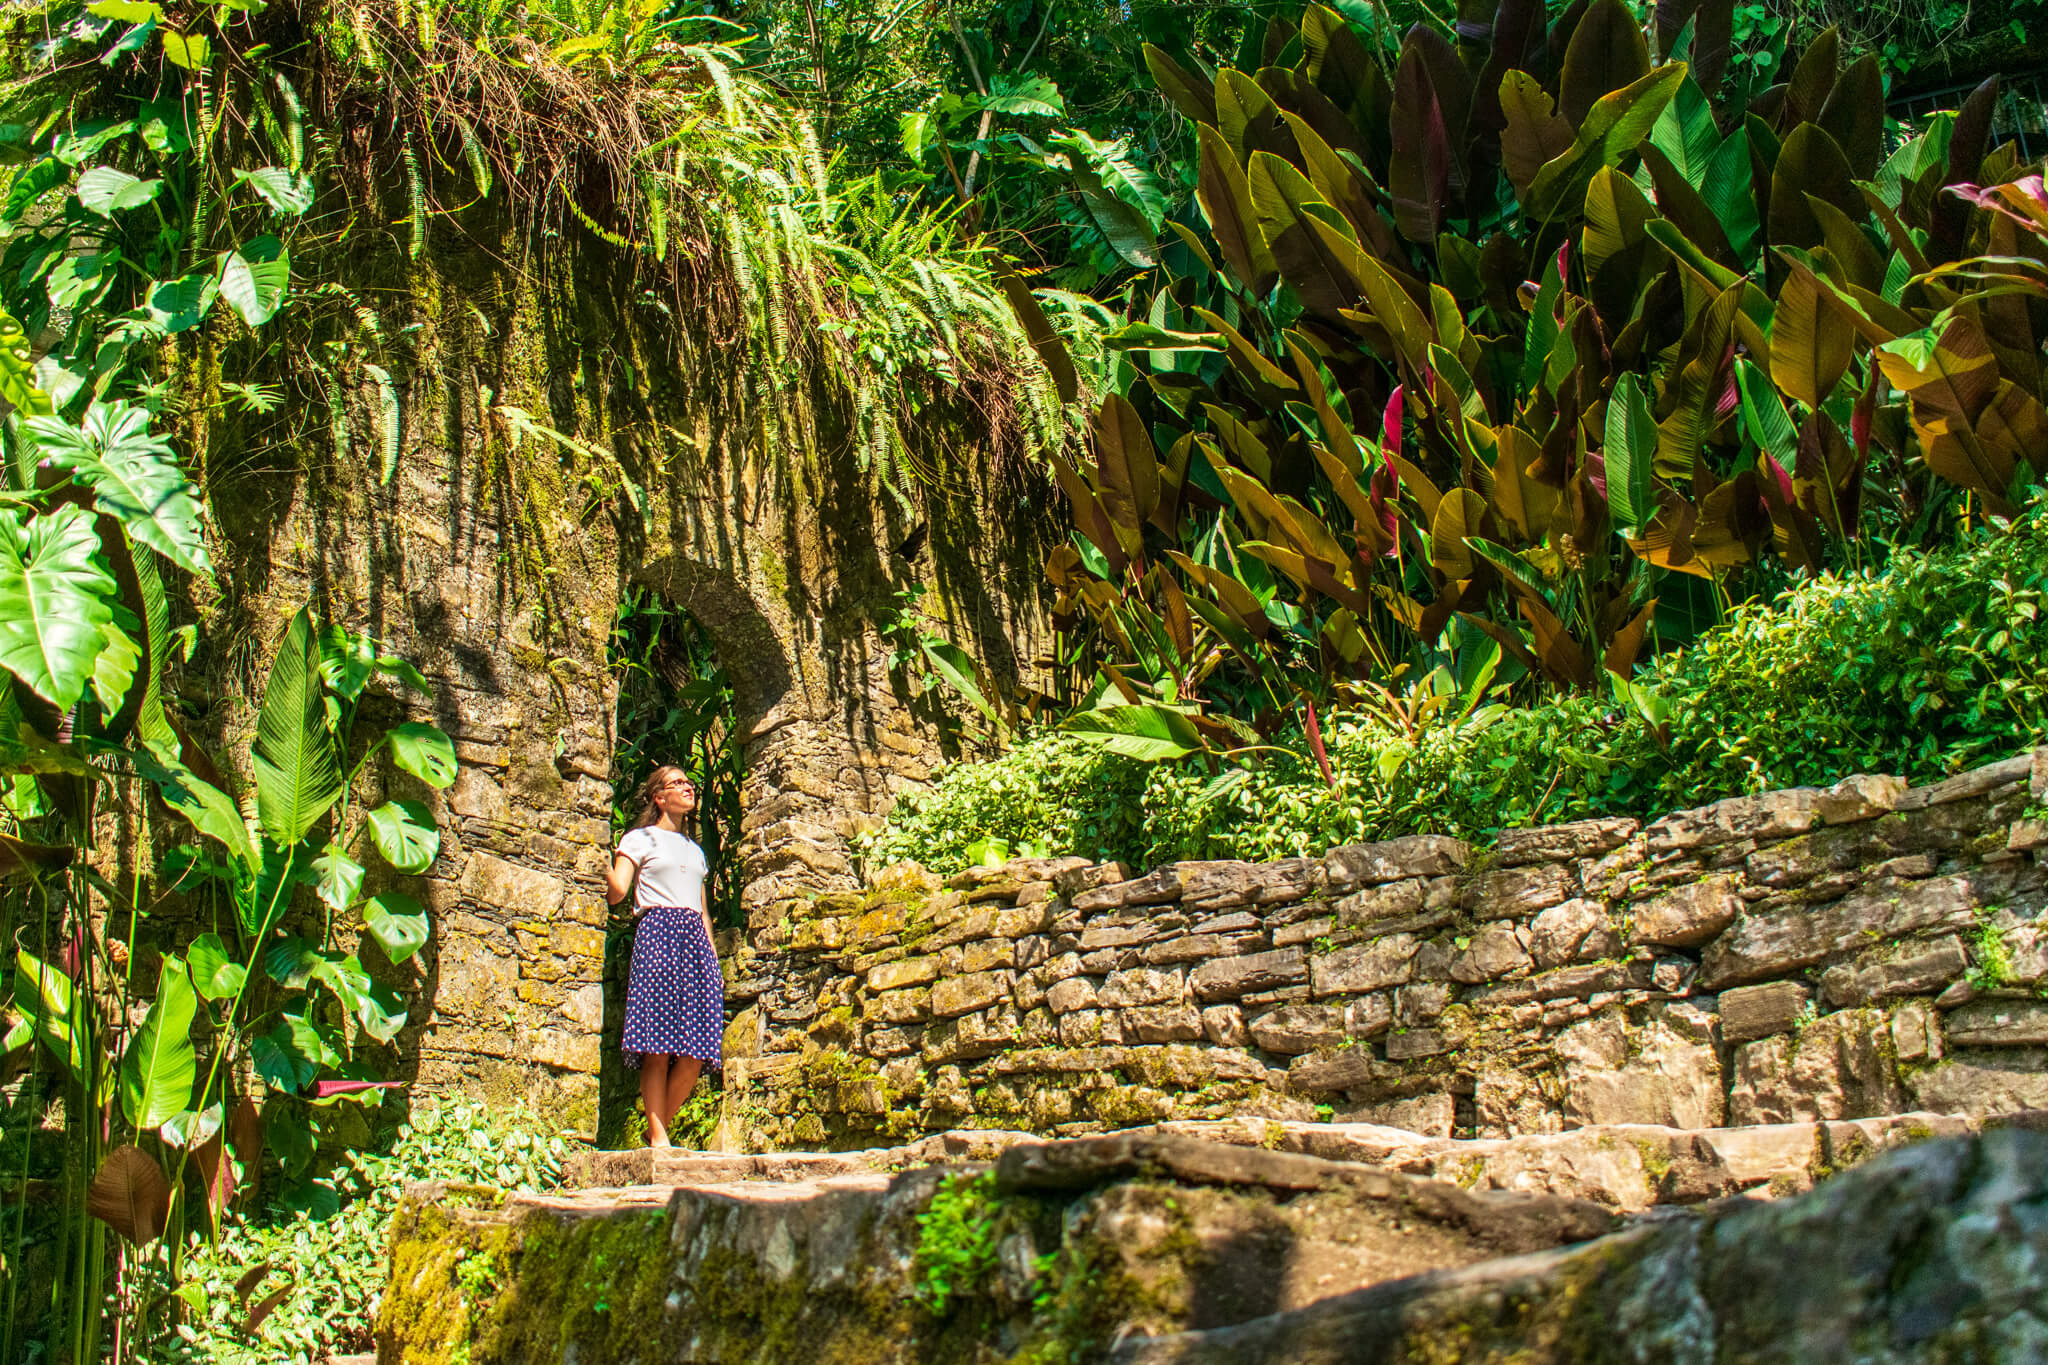 Girl under stone arch in jungle garden of Los Pozas de Xilitla, Mexico.